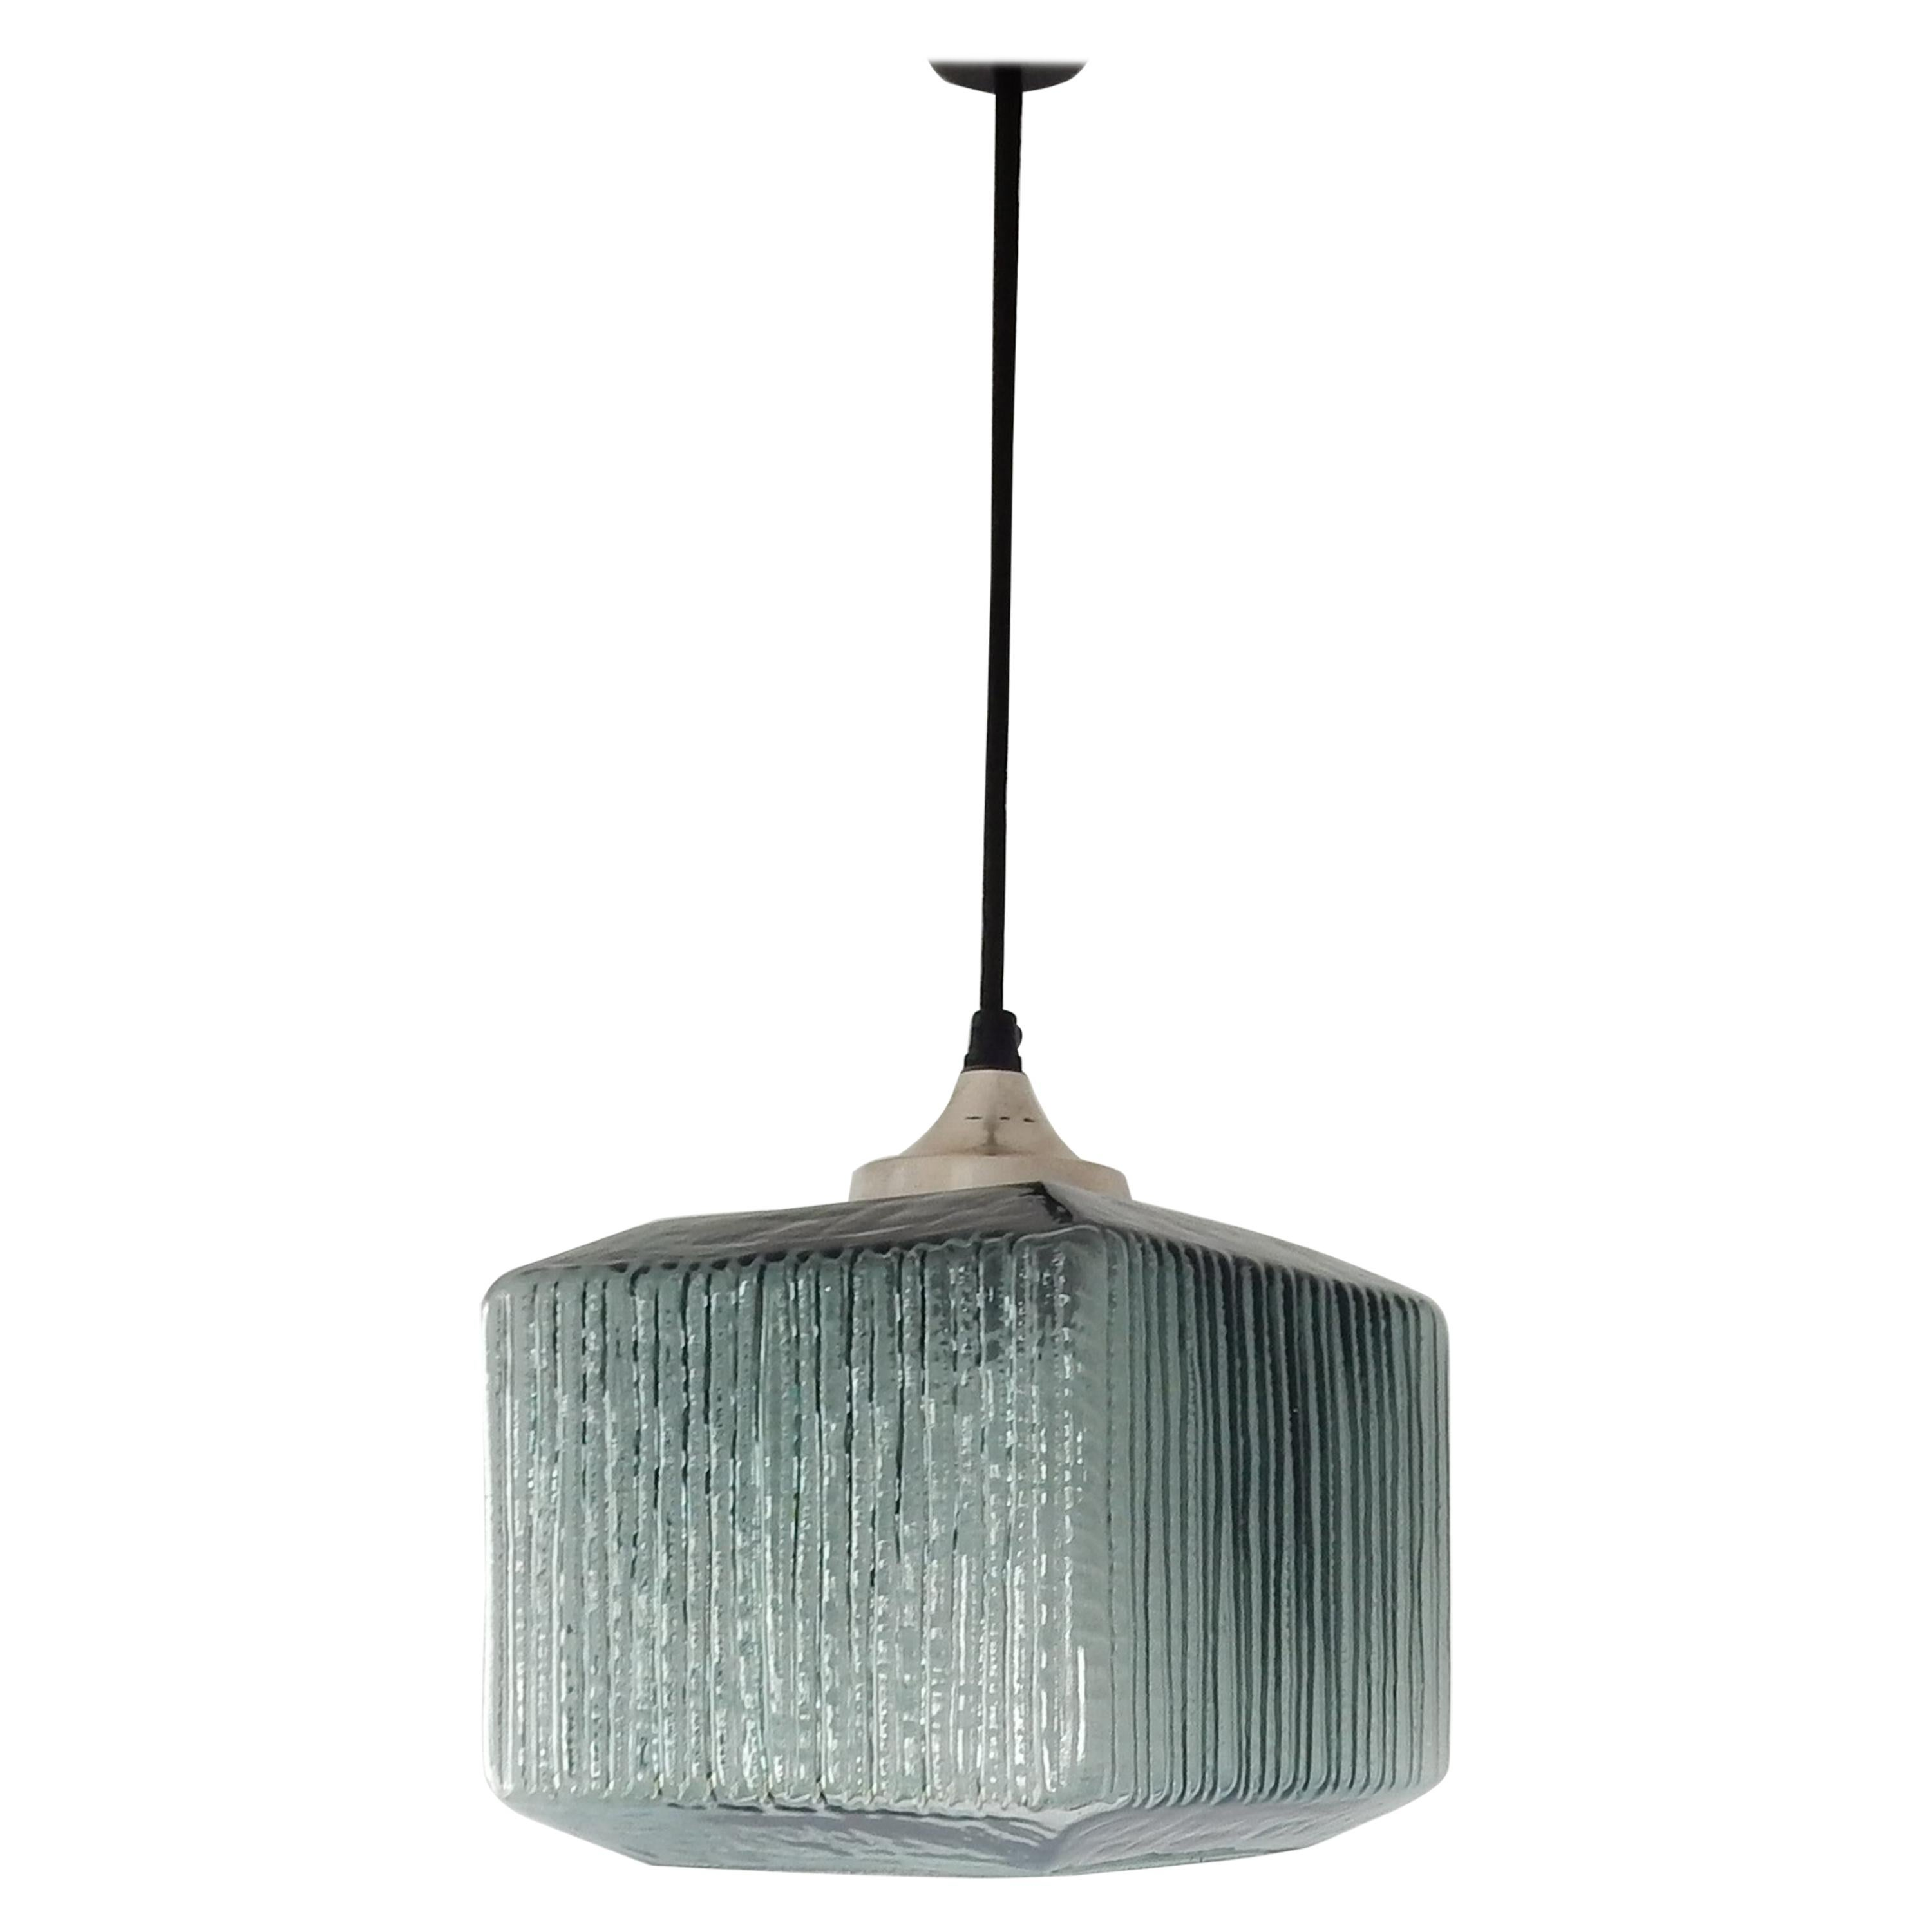 Double Glass Pendant Lamp in Style of Carl Fagerlund for Orrefors, 1960s